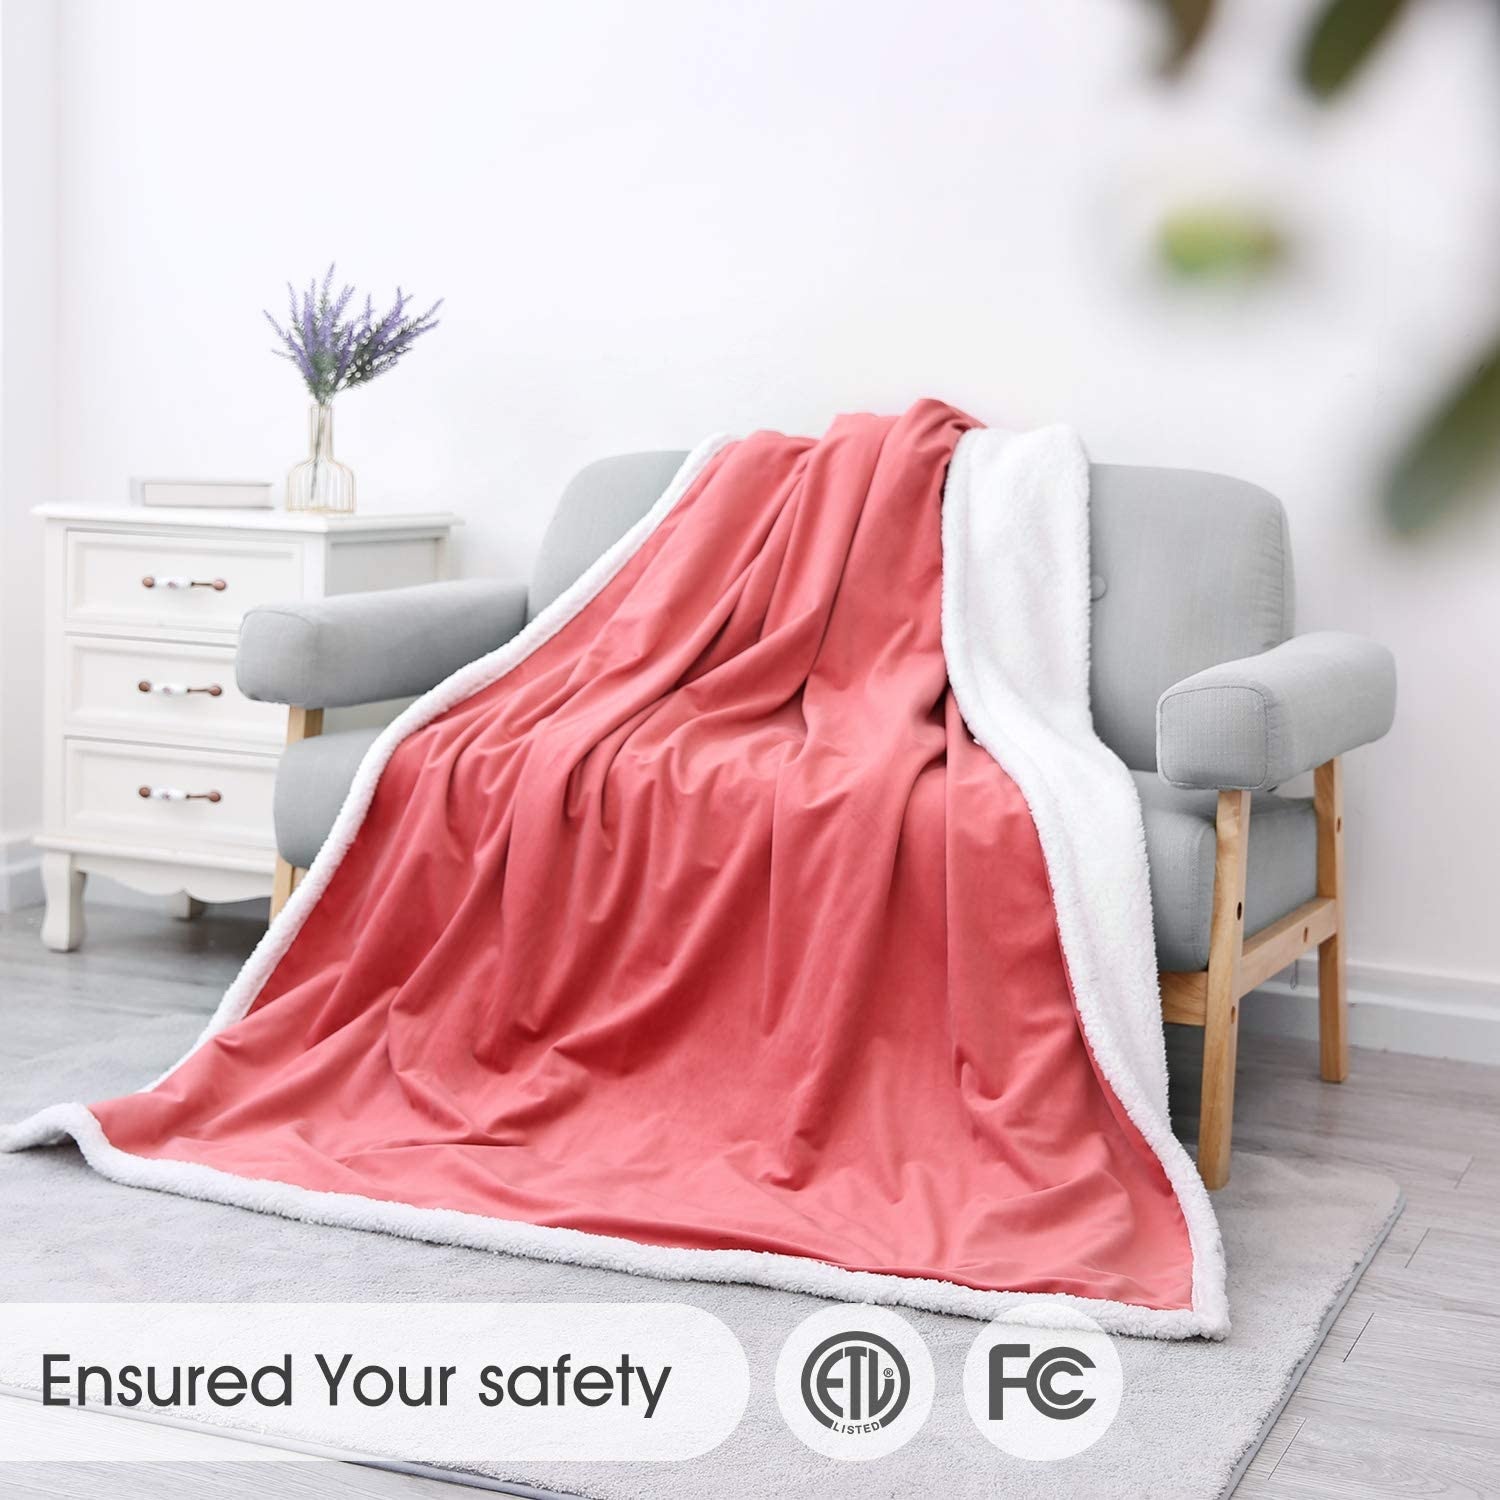 "Heated Blanket Electric Throws Lightweight Soft Double-Layer Plush Blanket, 3 Heat Settings, Fast Heating, 2H Auto Off, 50"" x 60"" Pink, Travel Home Office Use, Machine Washable: Kitchen & Dining"